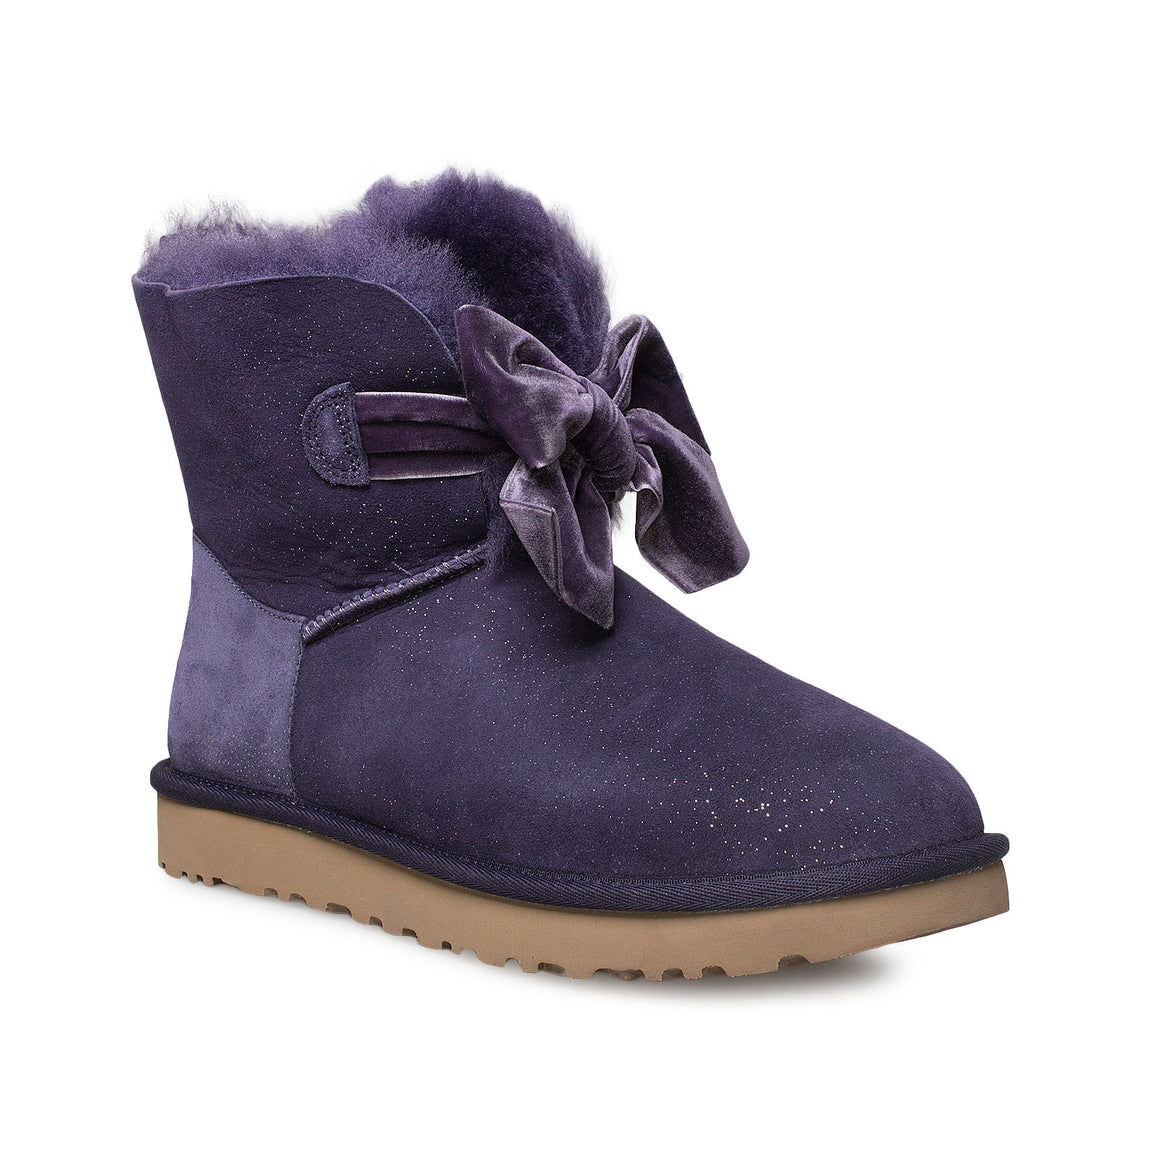 UGG Gita Twinkle Bow Mini Night Shade Boots - Women's